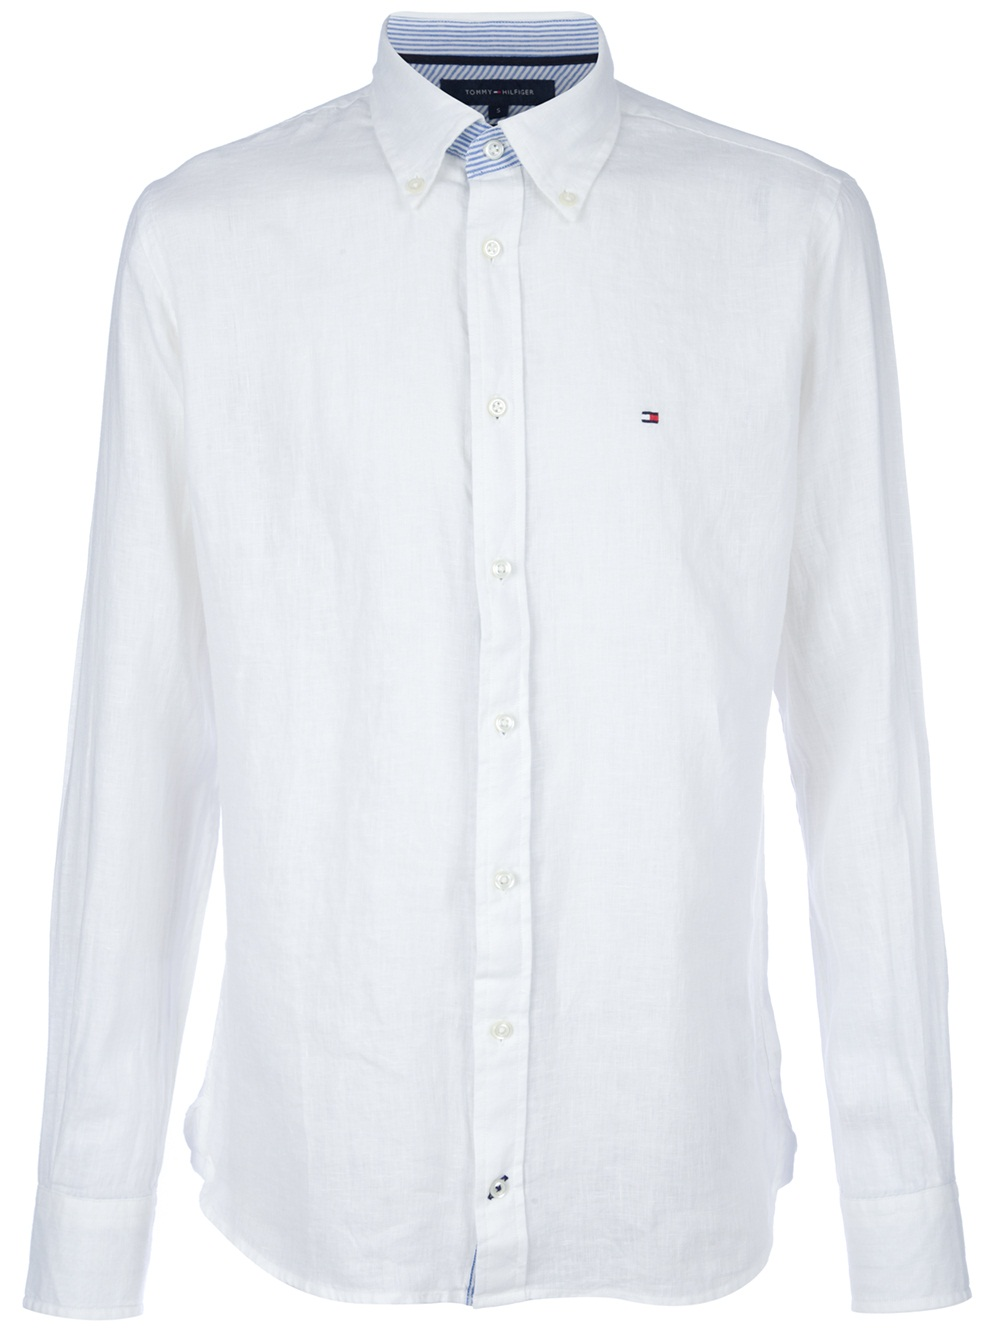 lyst tommy hilfiger classic linen shirt in white for men. Black Bedroom Furniture Sets. Home Design Ideas